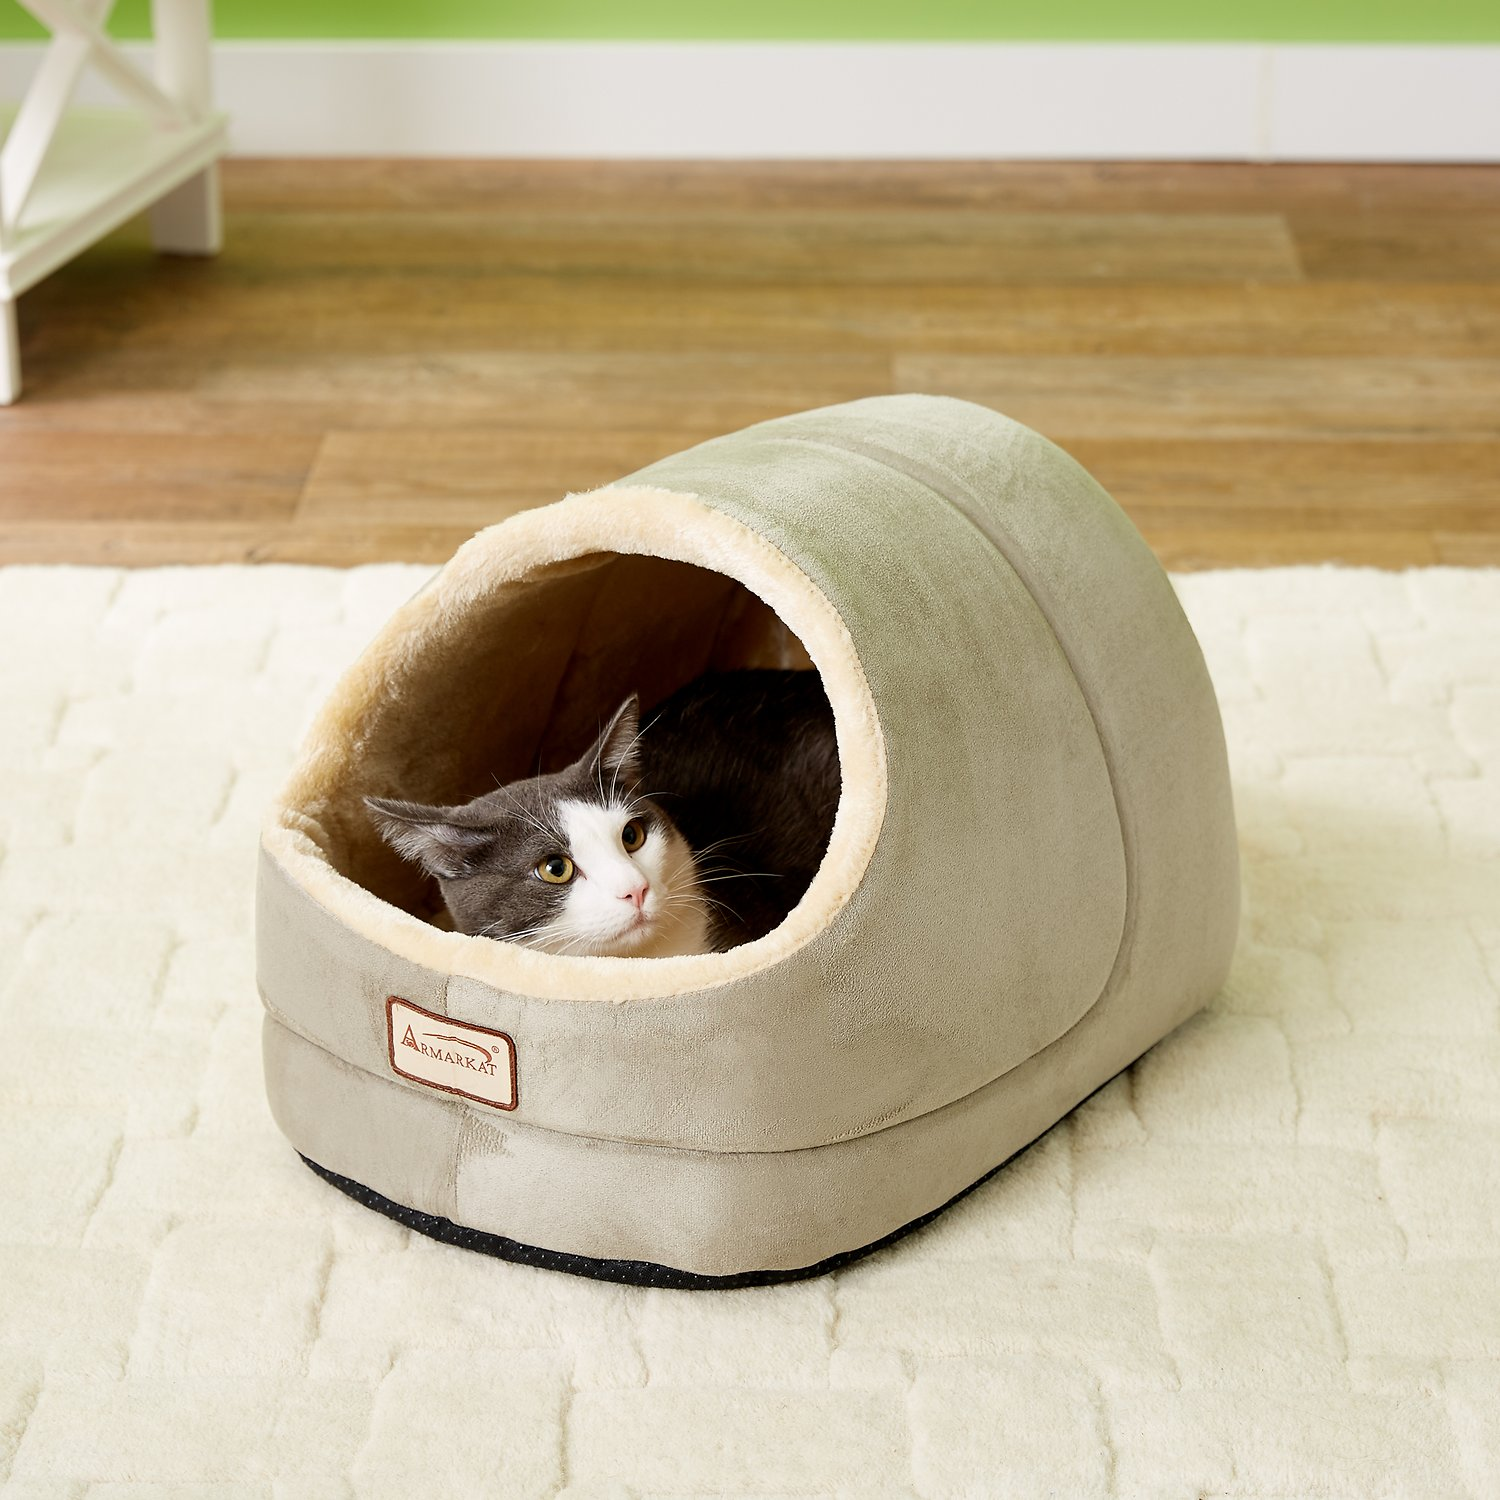 Watch Armarkat Slipper Shape Pet Bed, MochaBeige video